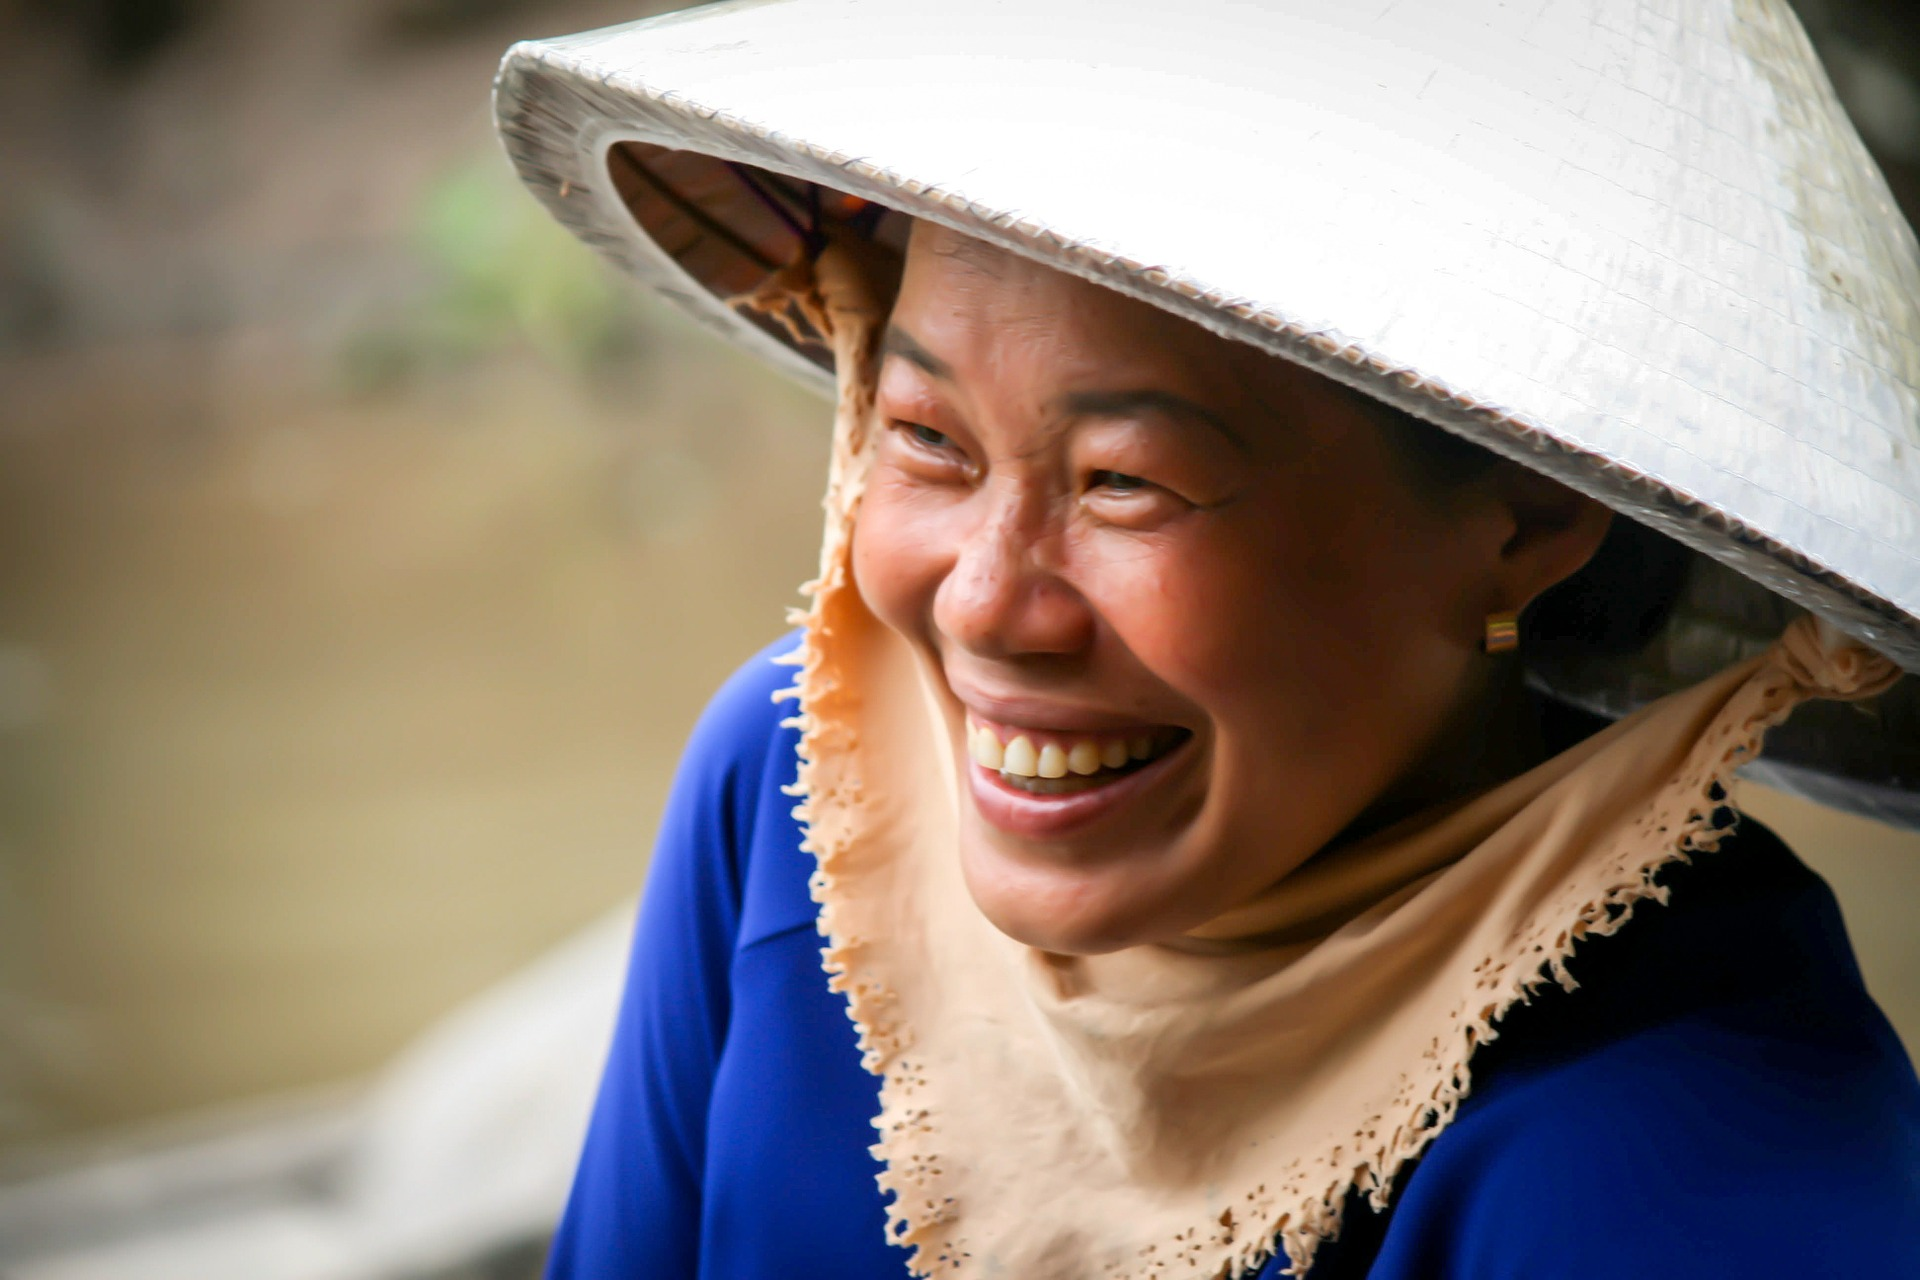 femme souriant